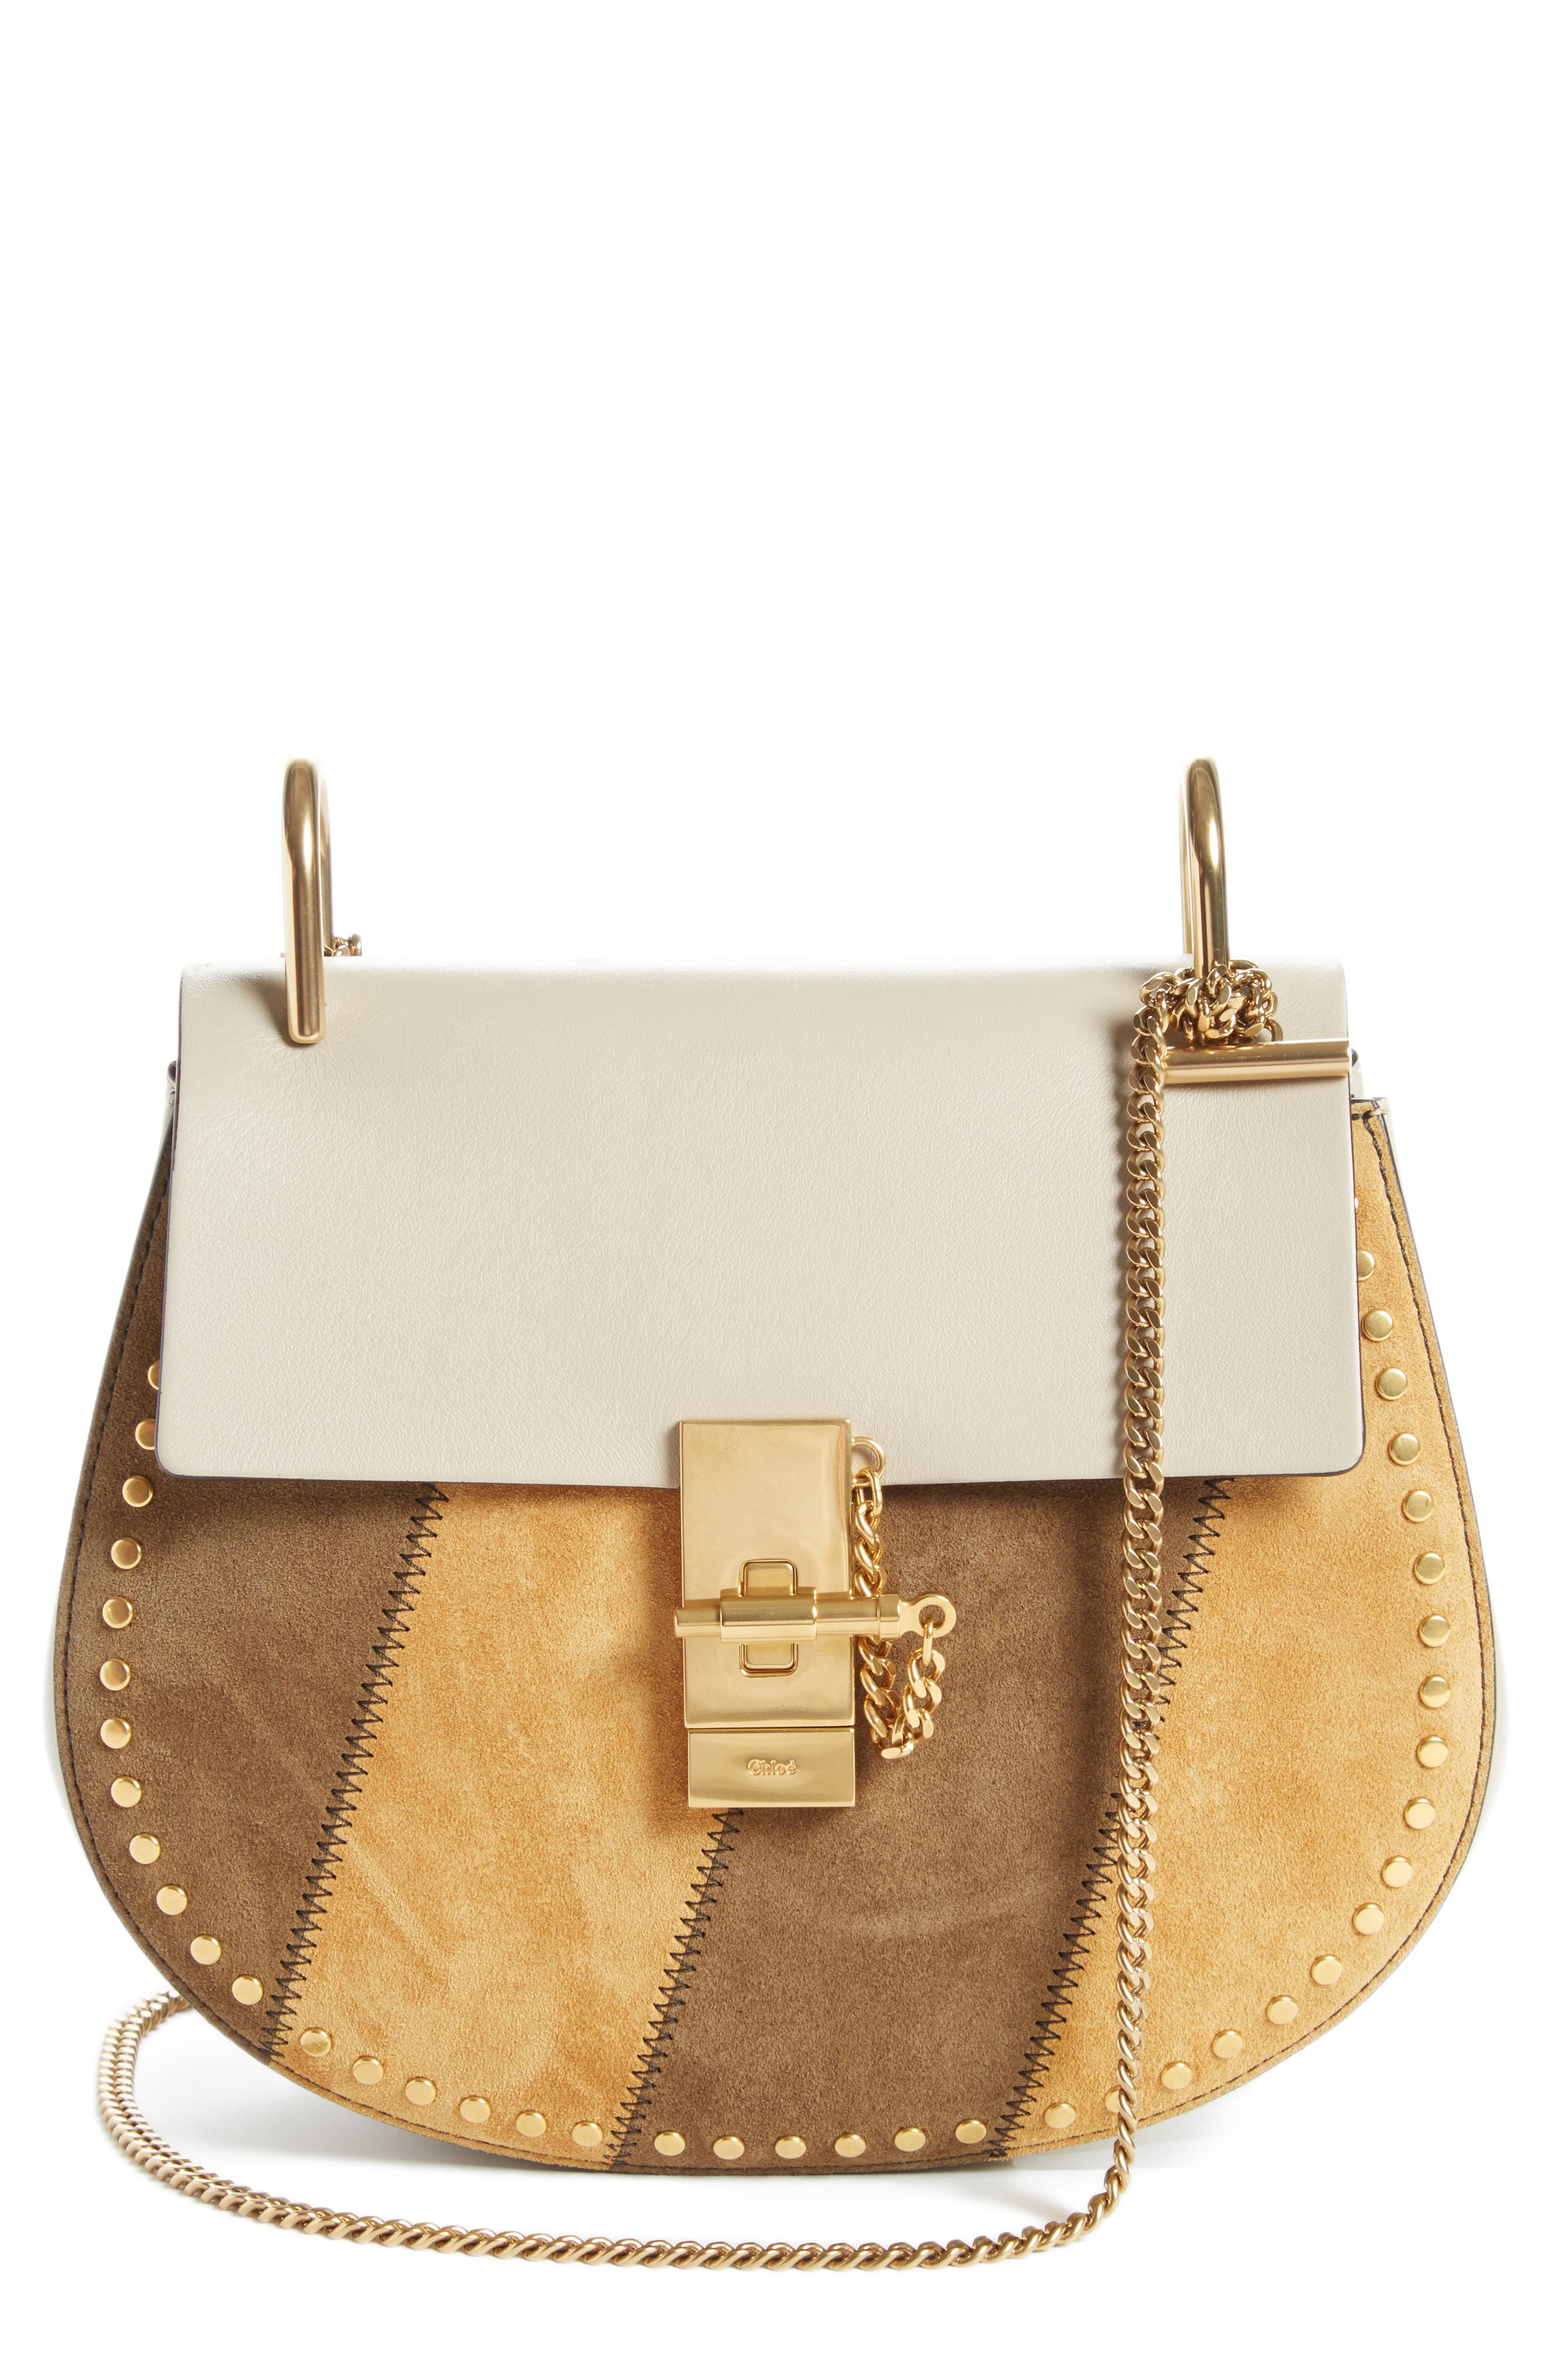 Main Image - Chloé Small Drew Leather Shoulder Bag